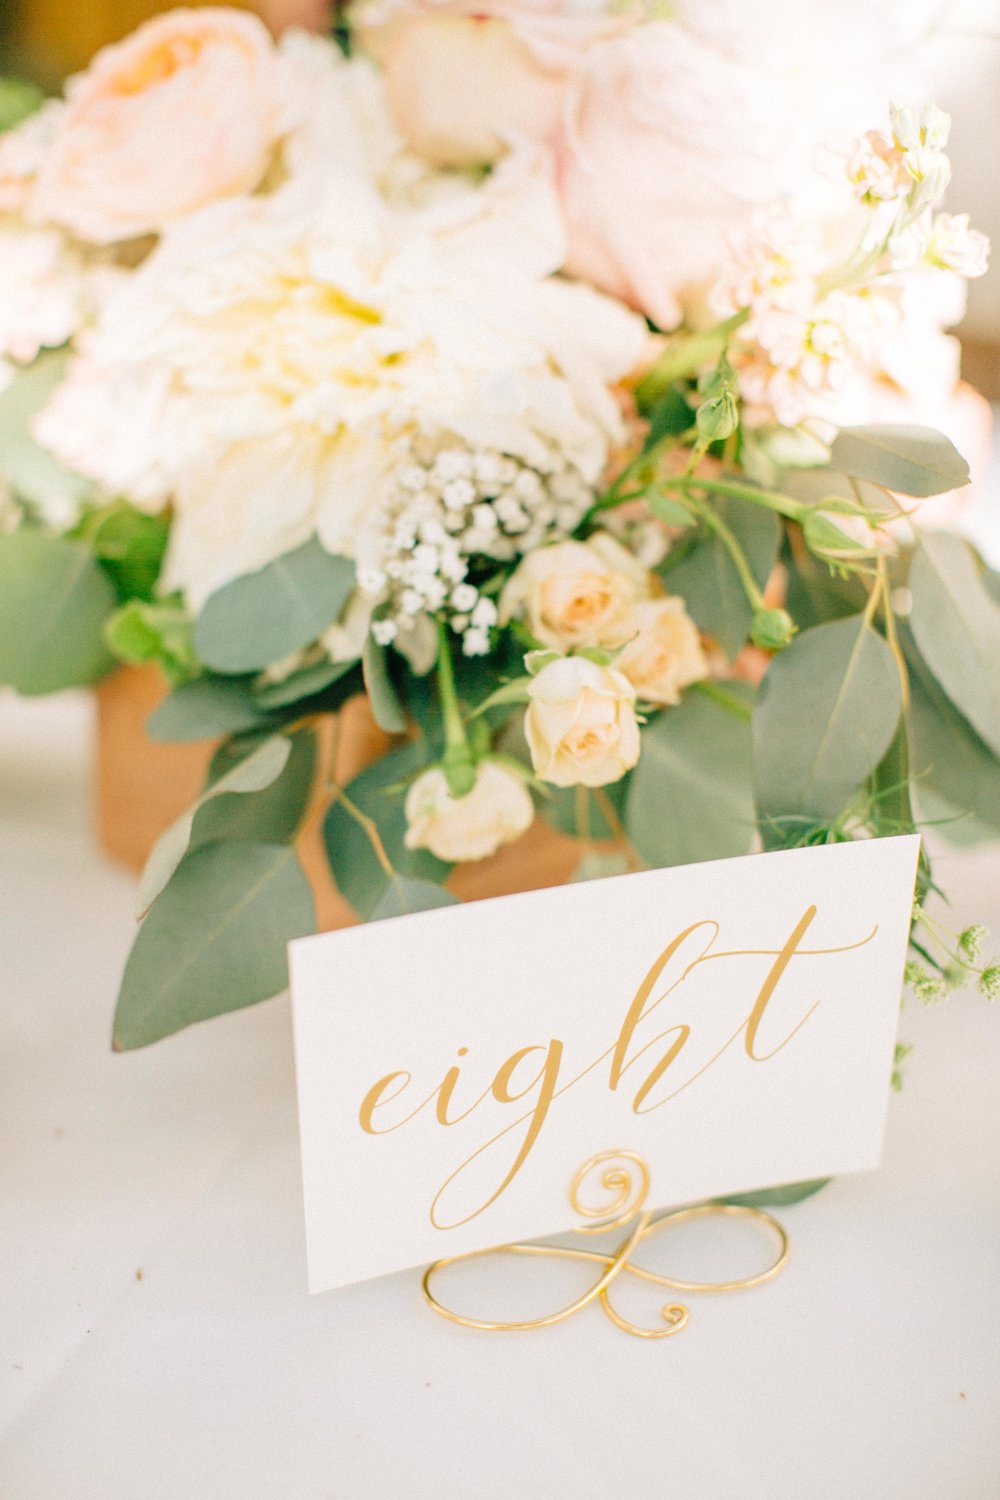 gold calligraphed table number